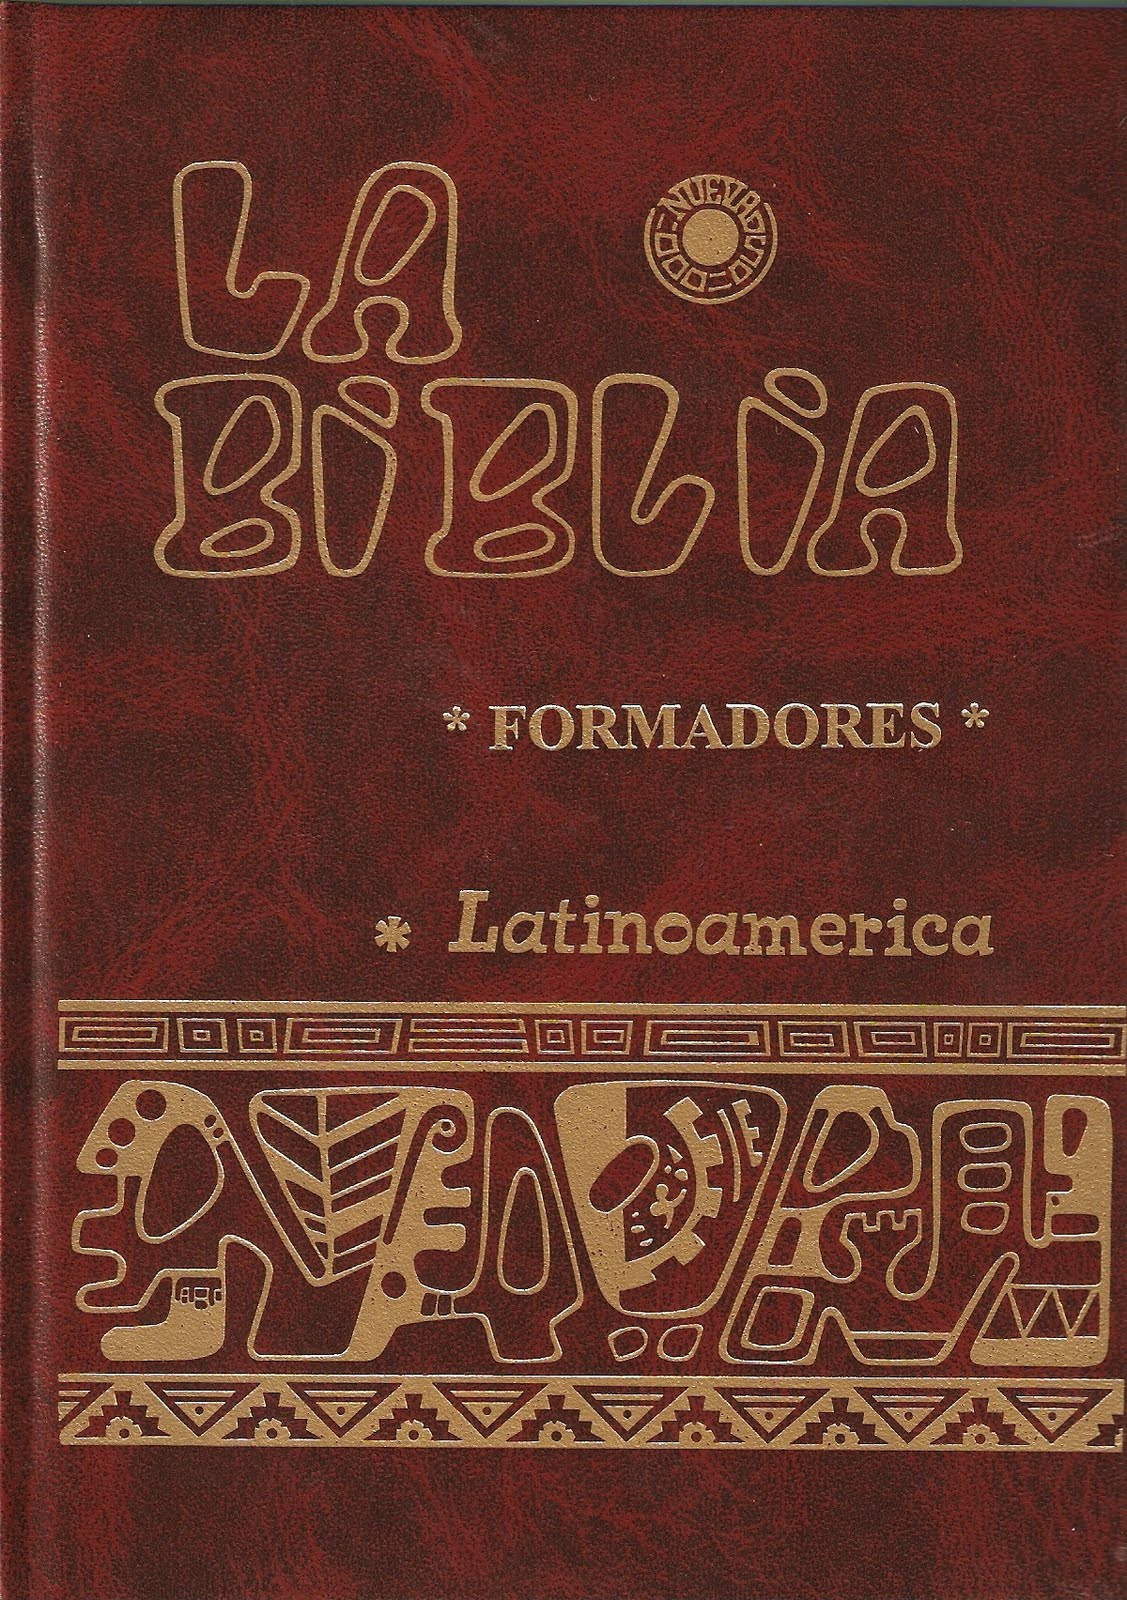 Libros Torrent Epub Biblia Catolica Latinoamericana Epub Il Secondo Messia Doc